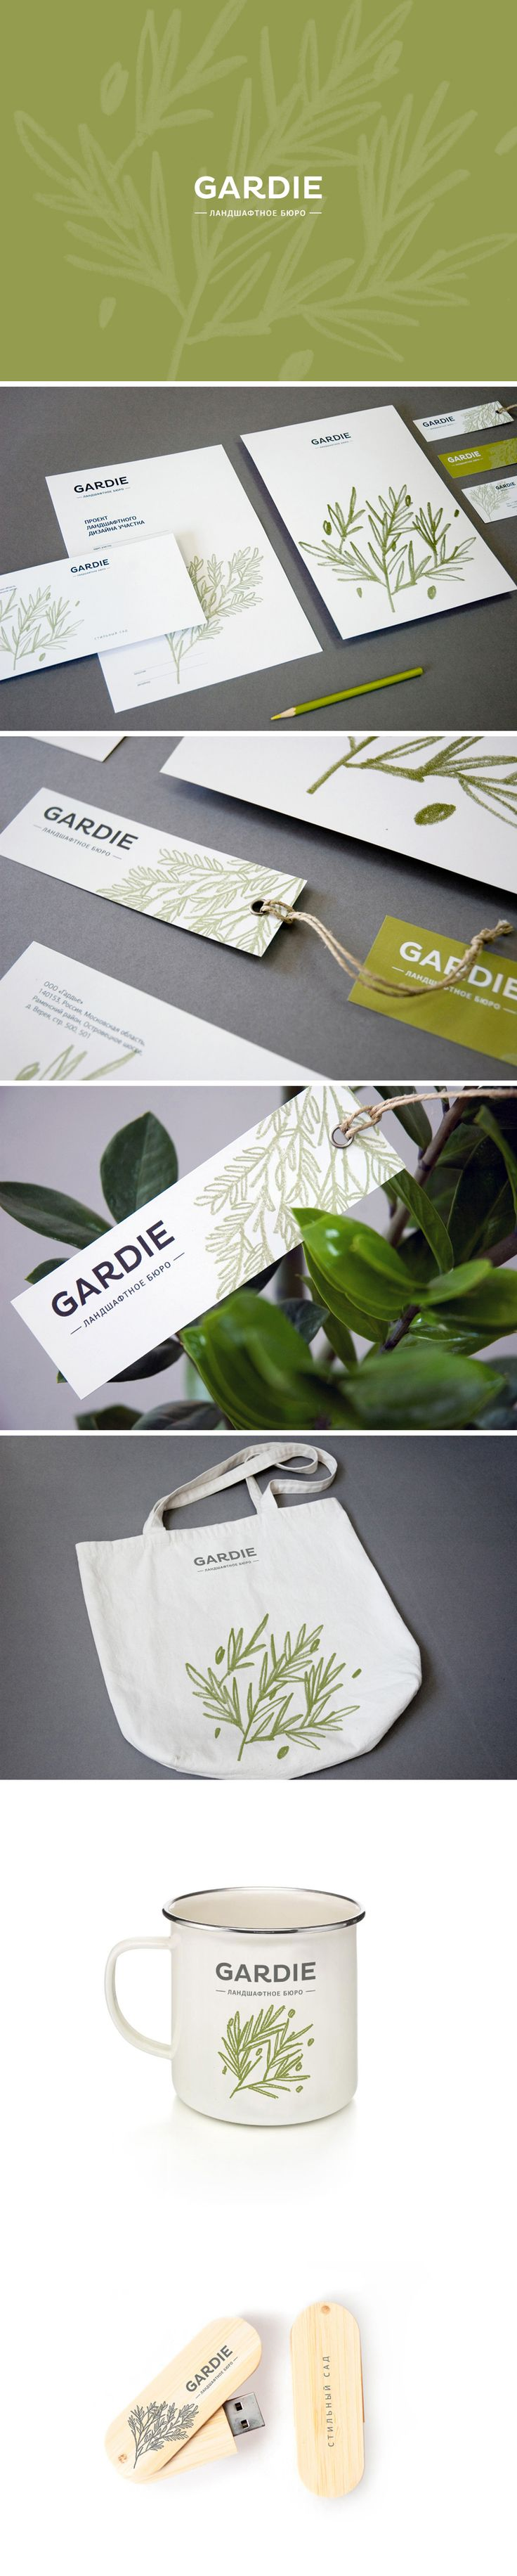 visual identity / gardie | repinned by www.BlickeDeeler.de | Have a look on www.LogoGestaltung-Hamburg.de